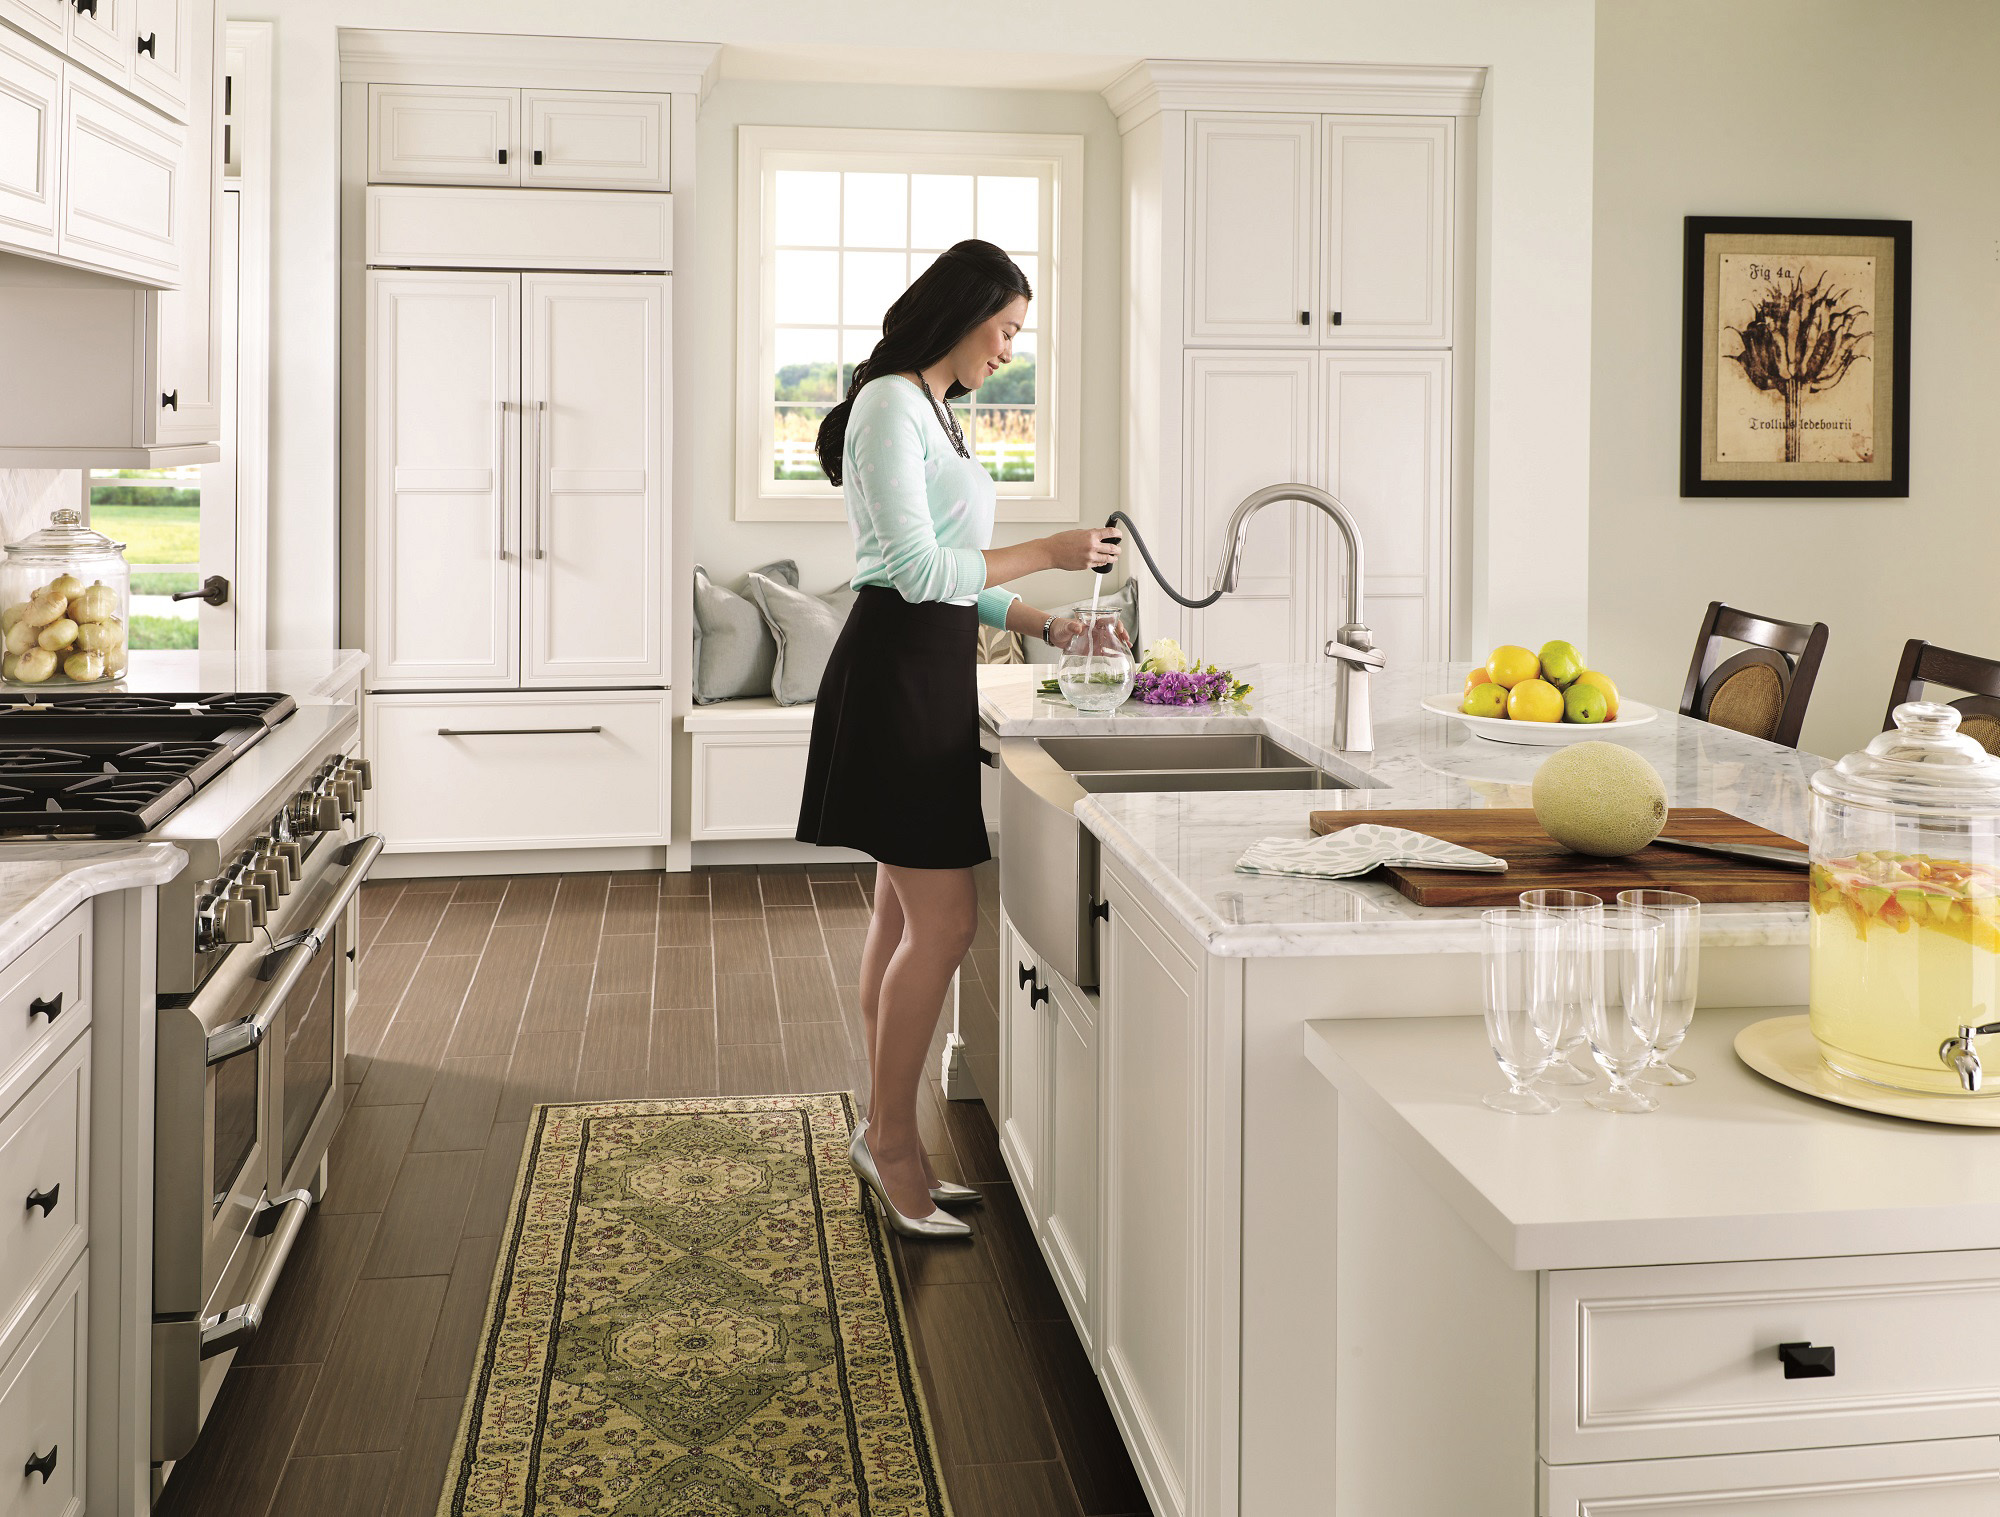 moen kitchen dark blue cabinets create a comfortable yet glamorous with the new etch pulldown faucetmoen incorporated